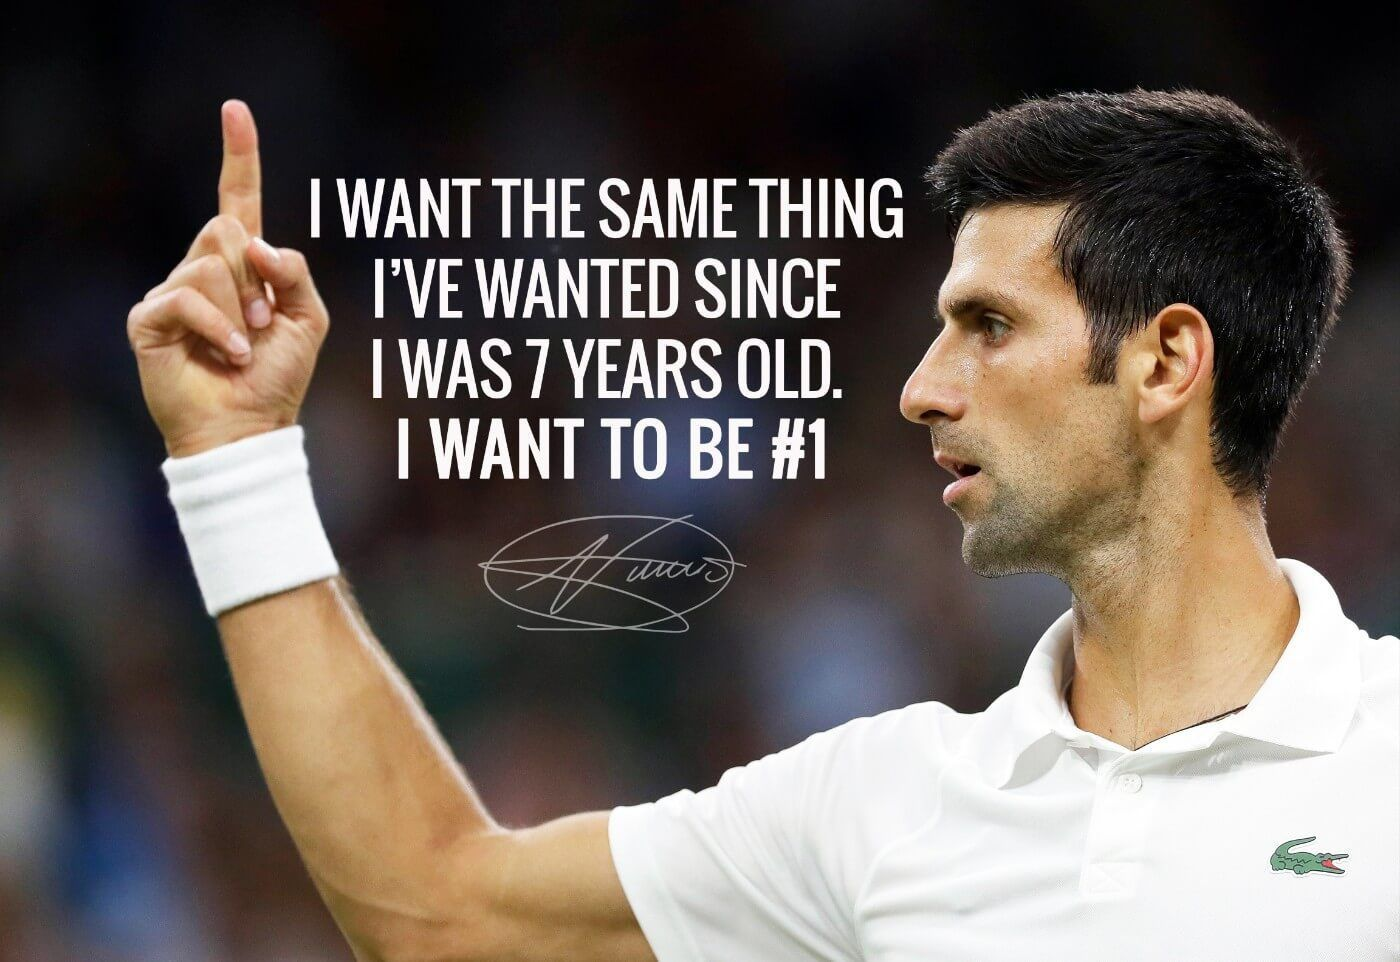 Tennis Quotes Novak Djokovic Quotes Motivational Quotes Atp No 1 Tennis Quotes Tennis Player Quote Novak Djokovic